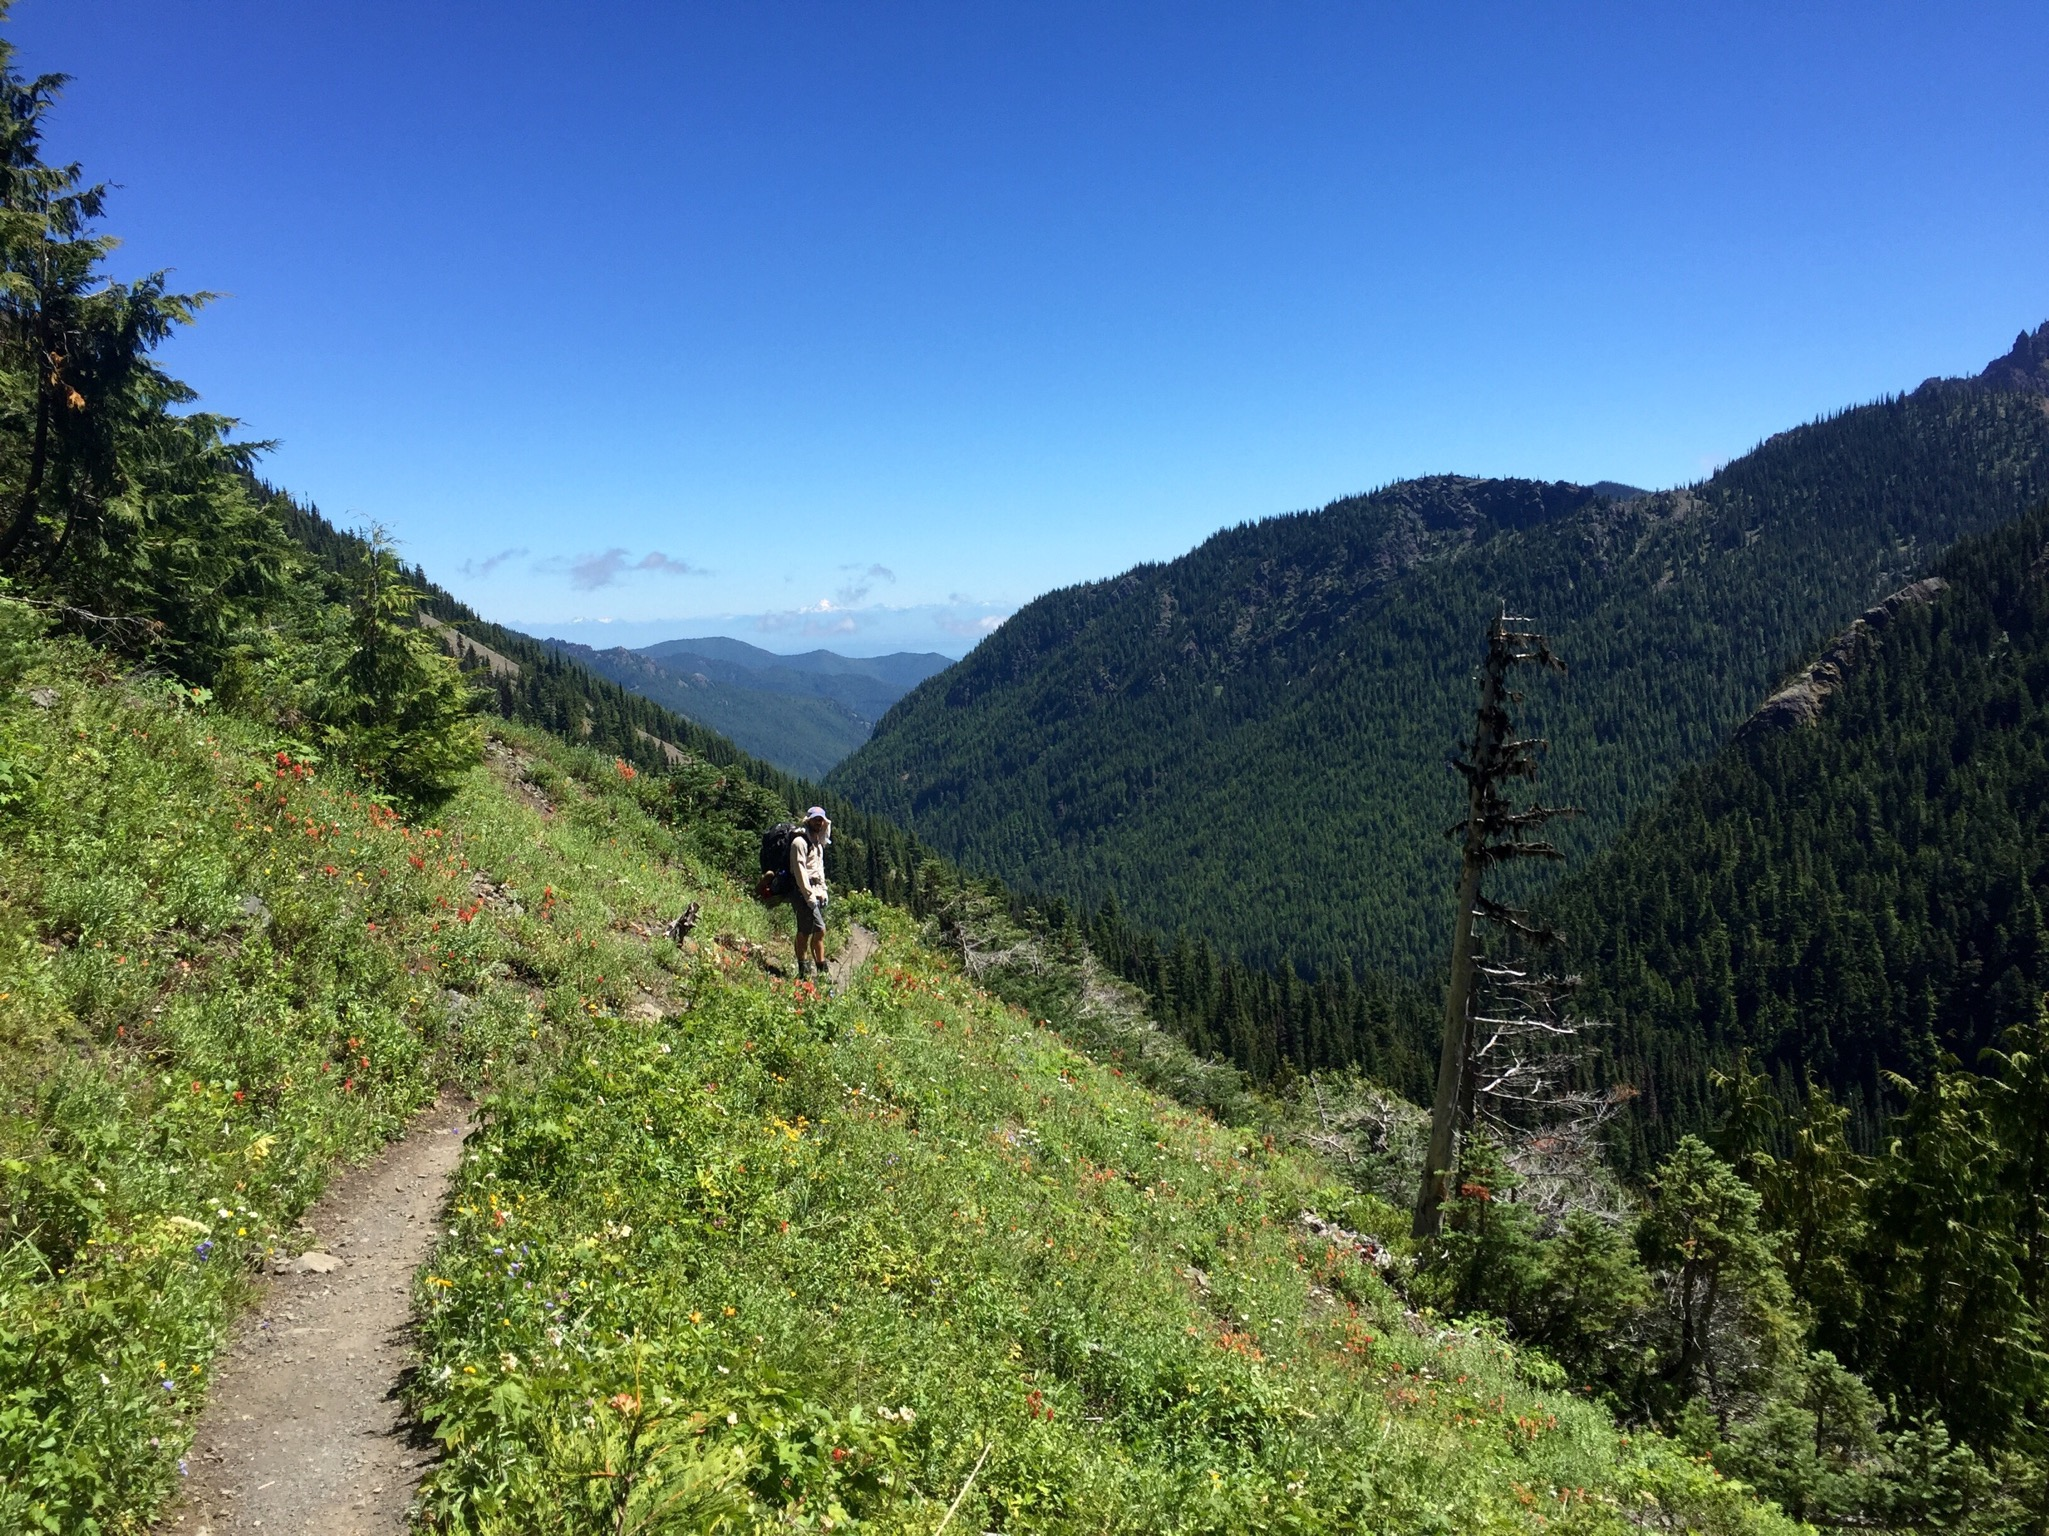 View of Big Quilcene Valley from the Marmot Pass trail